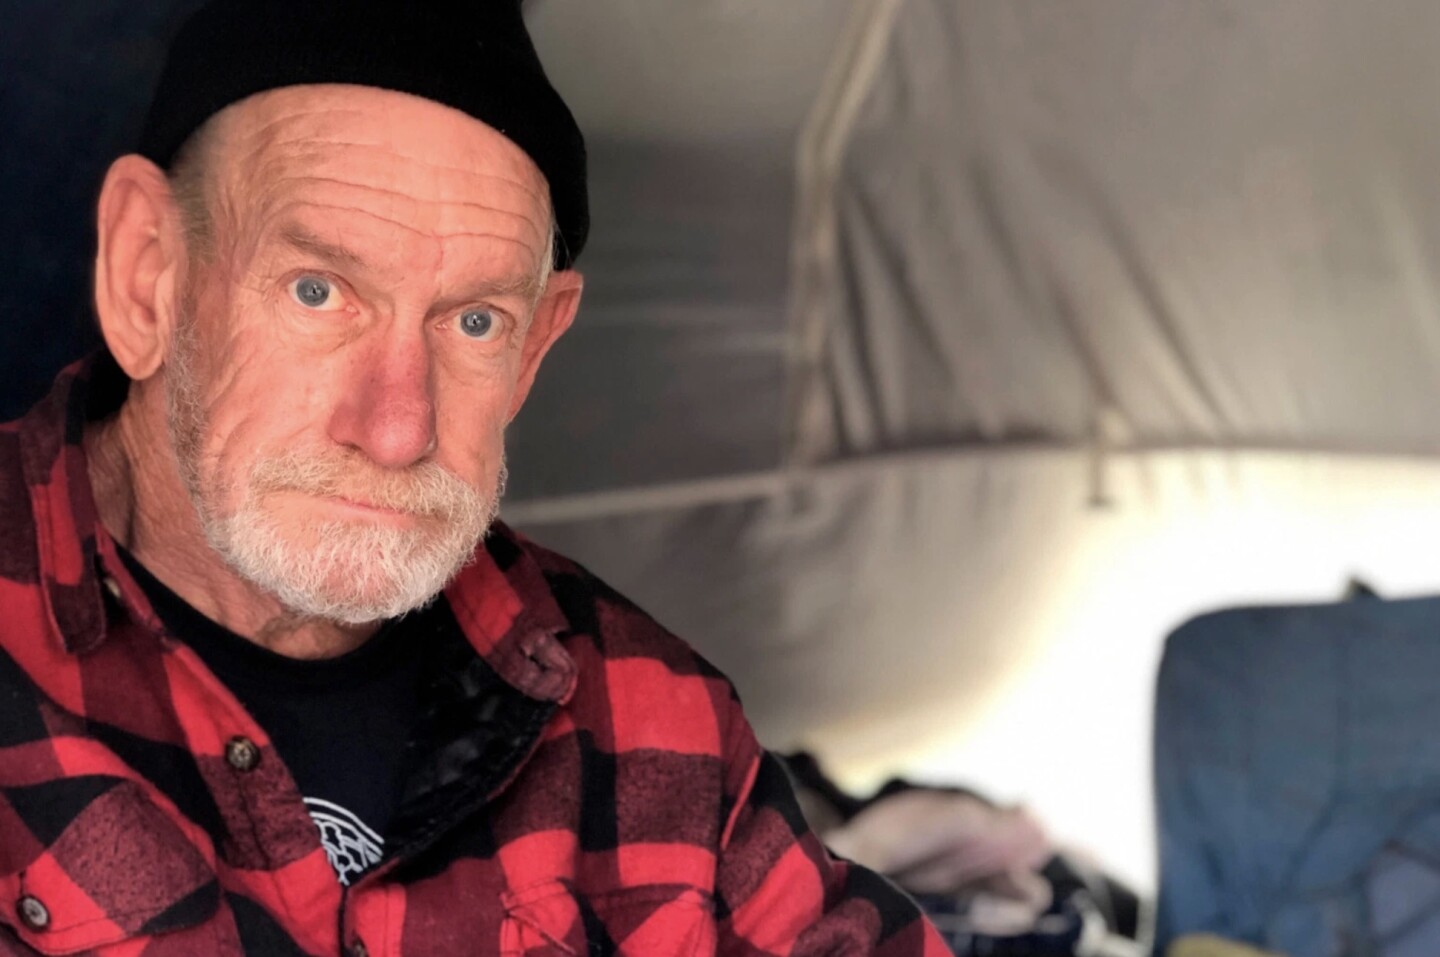 Kent Dull lives at the Here There encampment in Berkeley, California. | Cal Matters